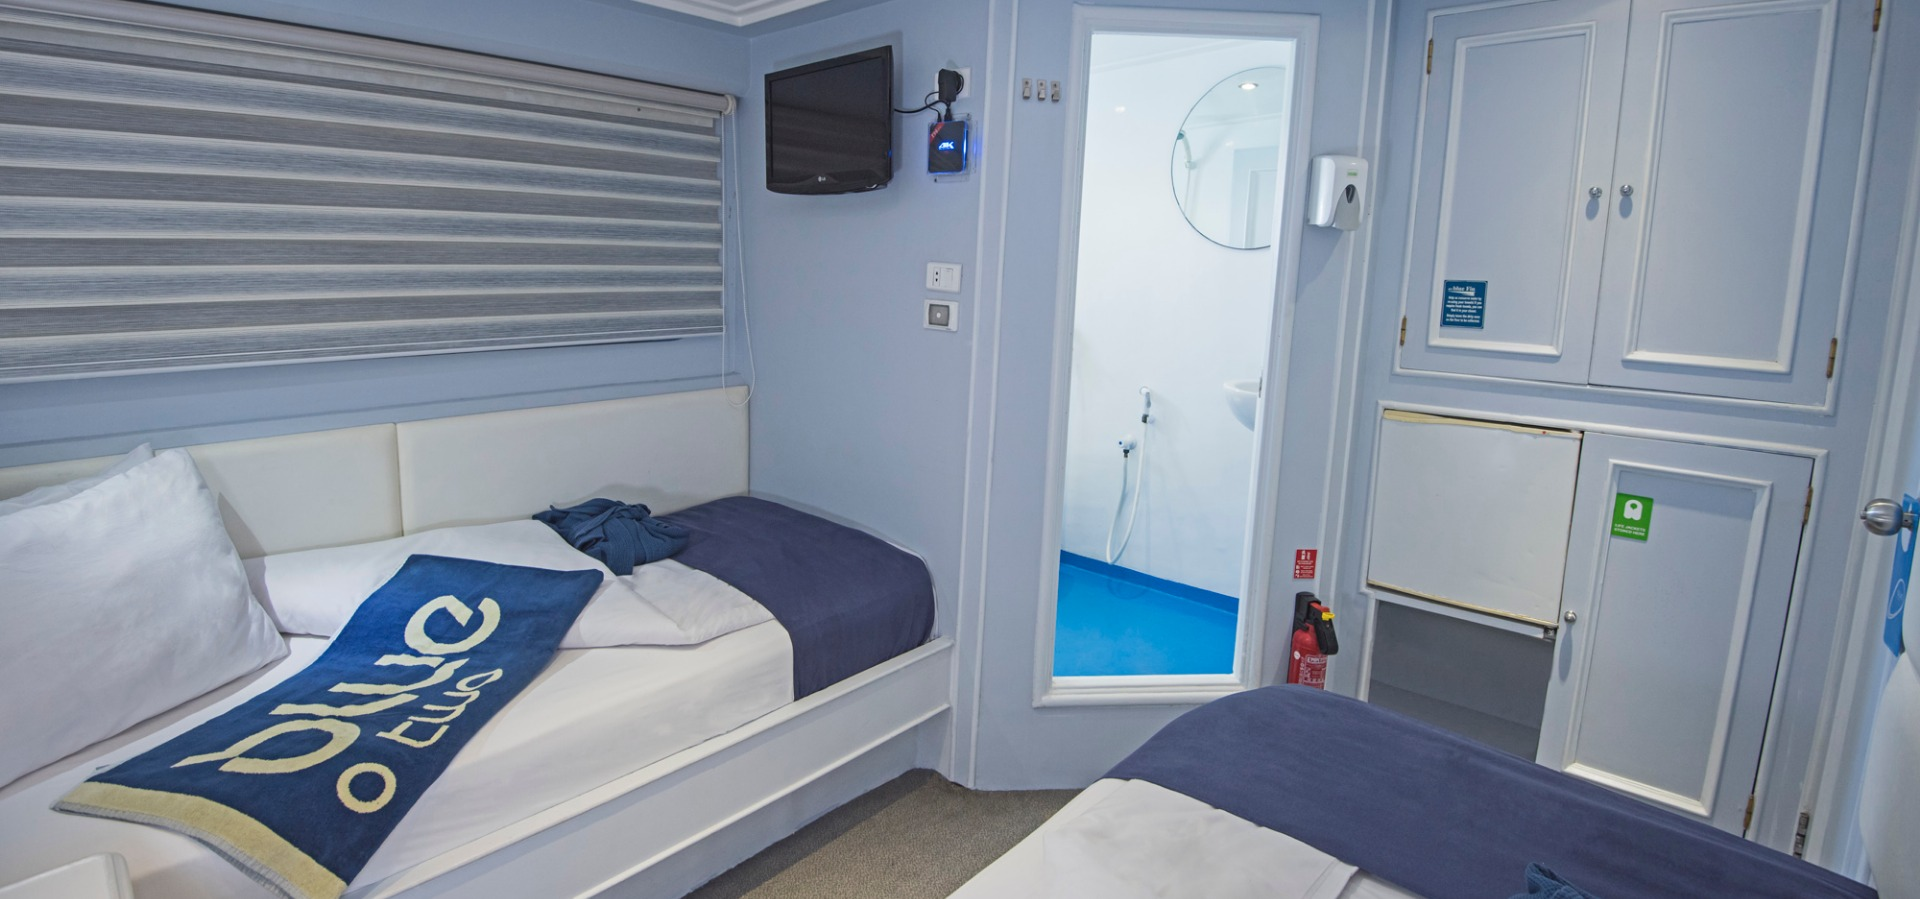 M/Y blue Fin room with en suite